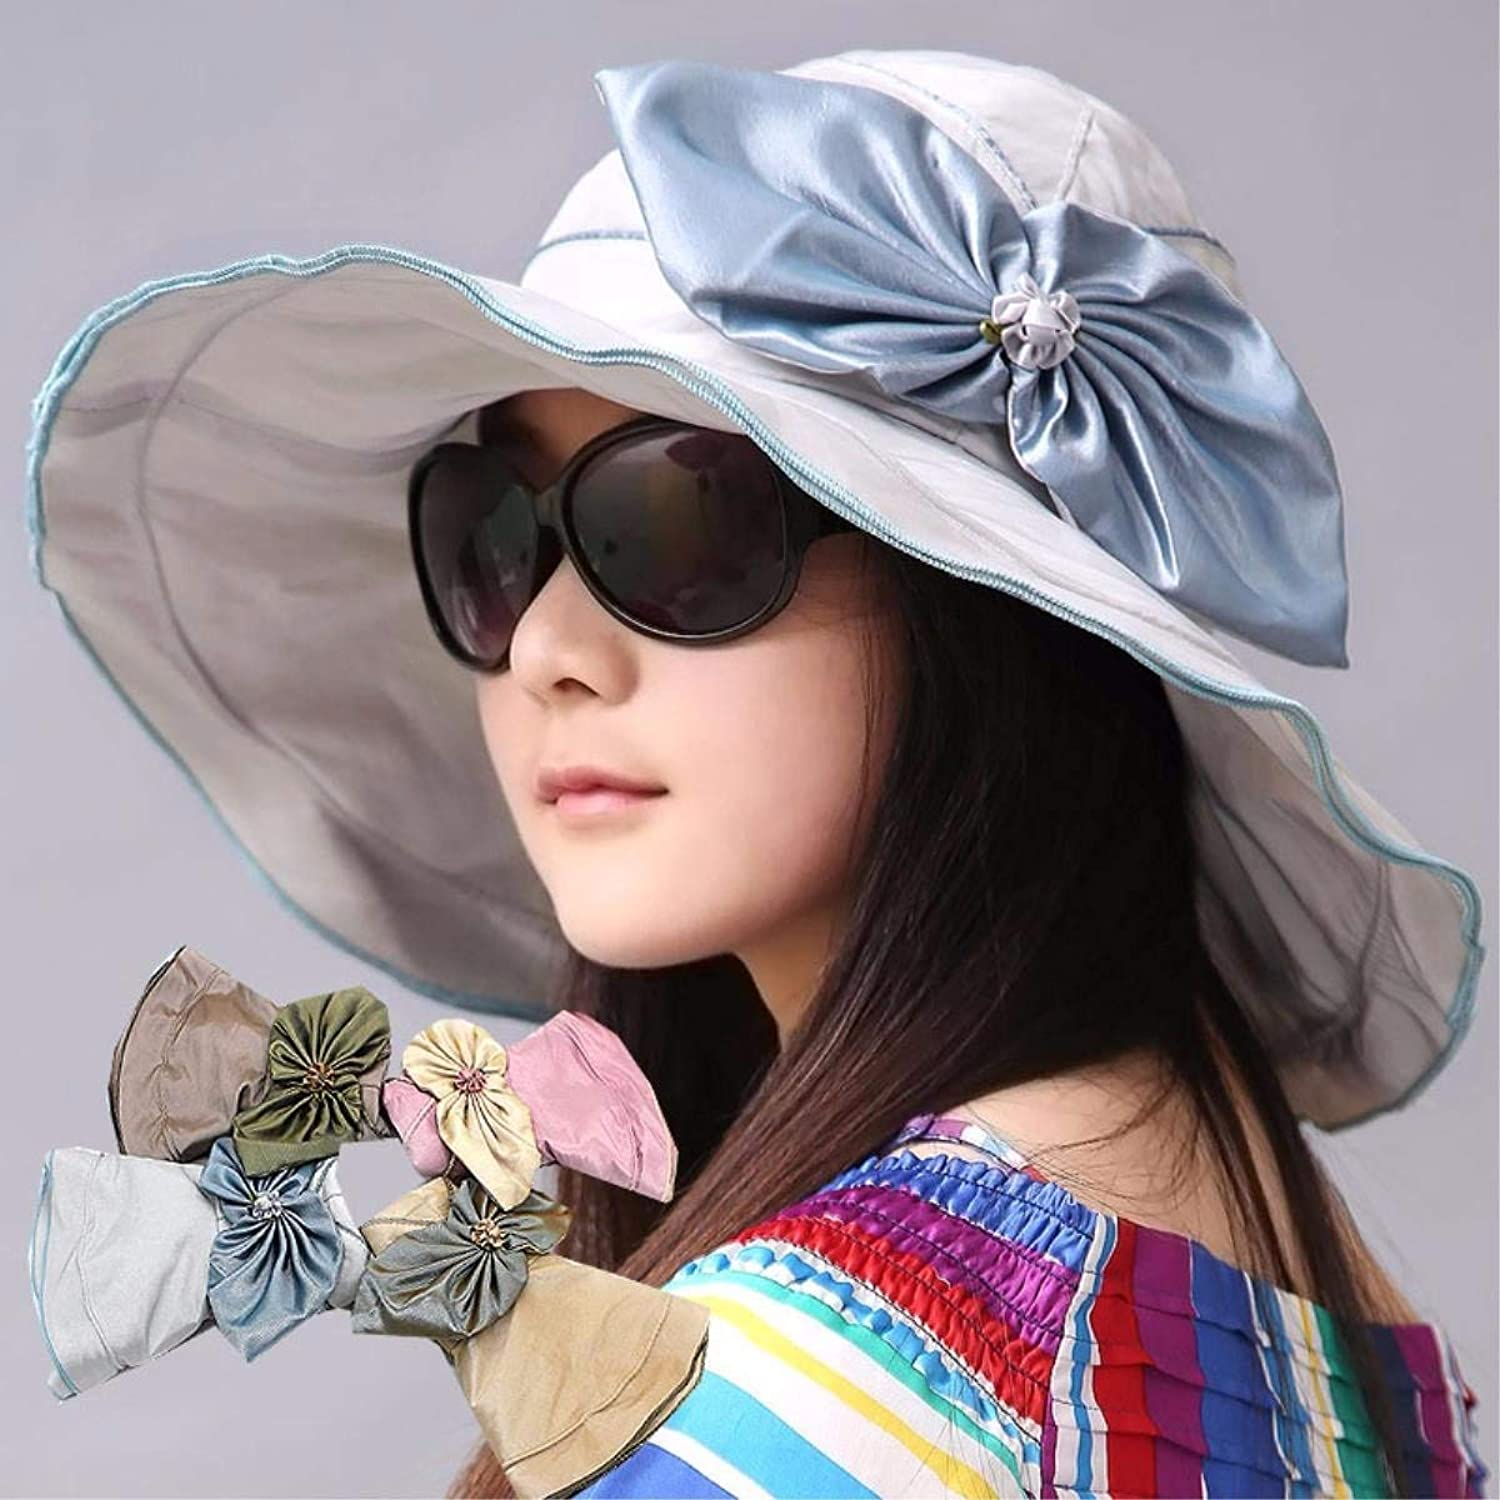 Chuiqingnet The hat female summer visor outdoor large along the hat beach hat sun hat sun hat can be folded to cool Cap